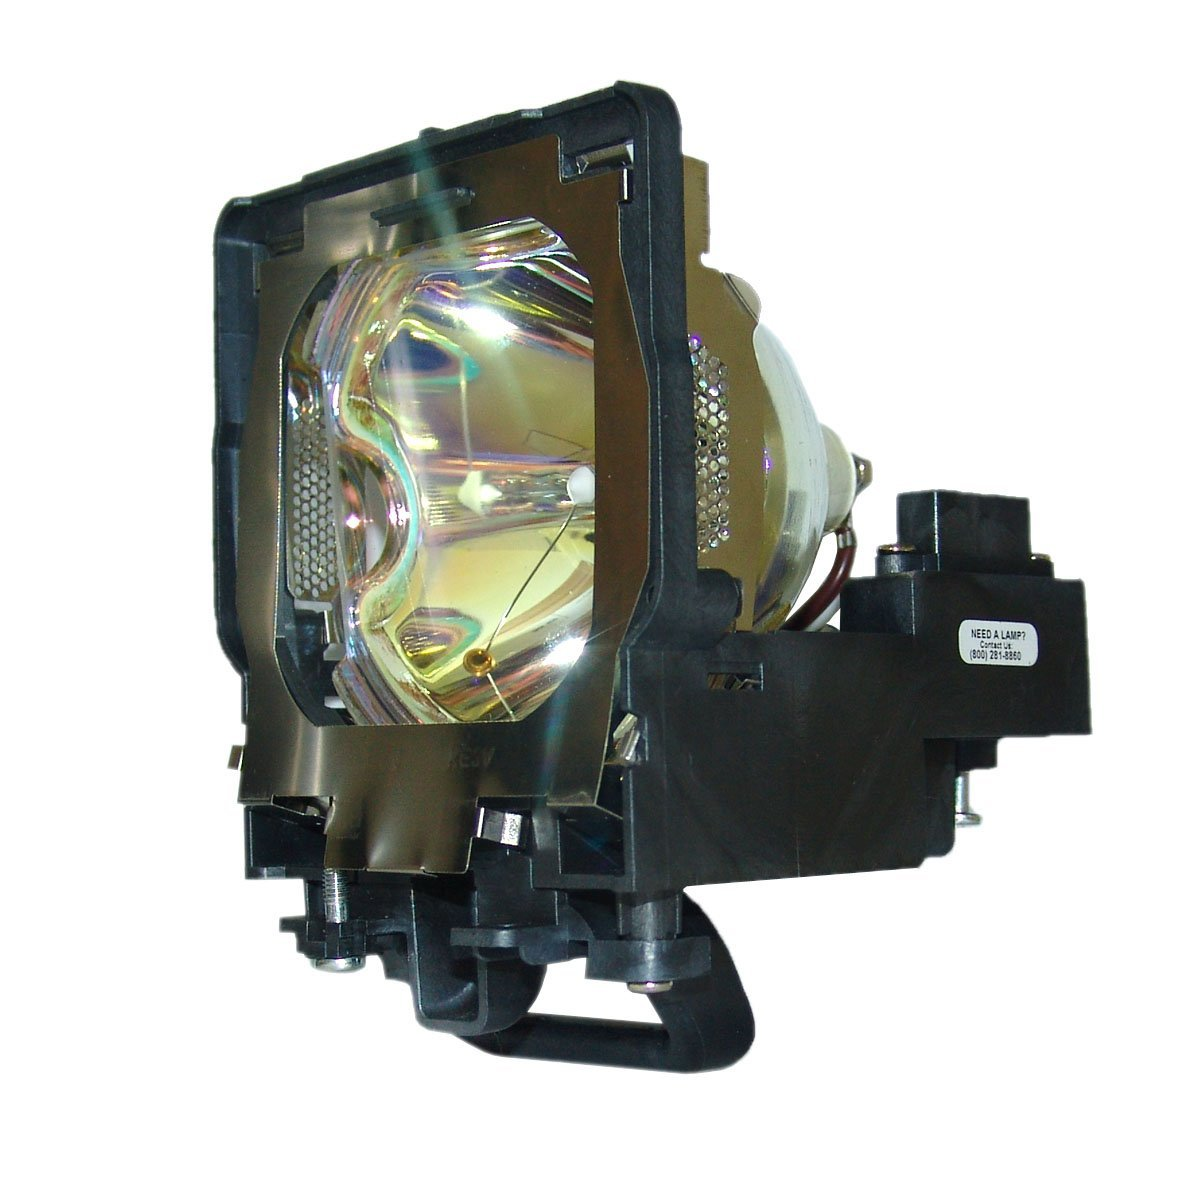 Projector Lamp Bulb POA-LMP109 LMP109 610-334-6267 for SANYO PLC-XF47 PLC-XF47W LC-XT5 LX1500 with housing compatible bare bulb poa lmp146 poalmp146 lmp146 610 351 5939 for sanyo plc hf10000l projector bulb lamp without housing